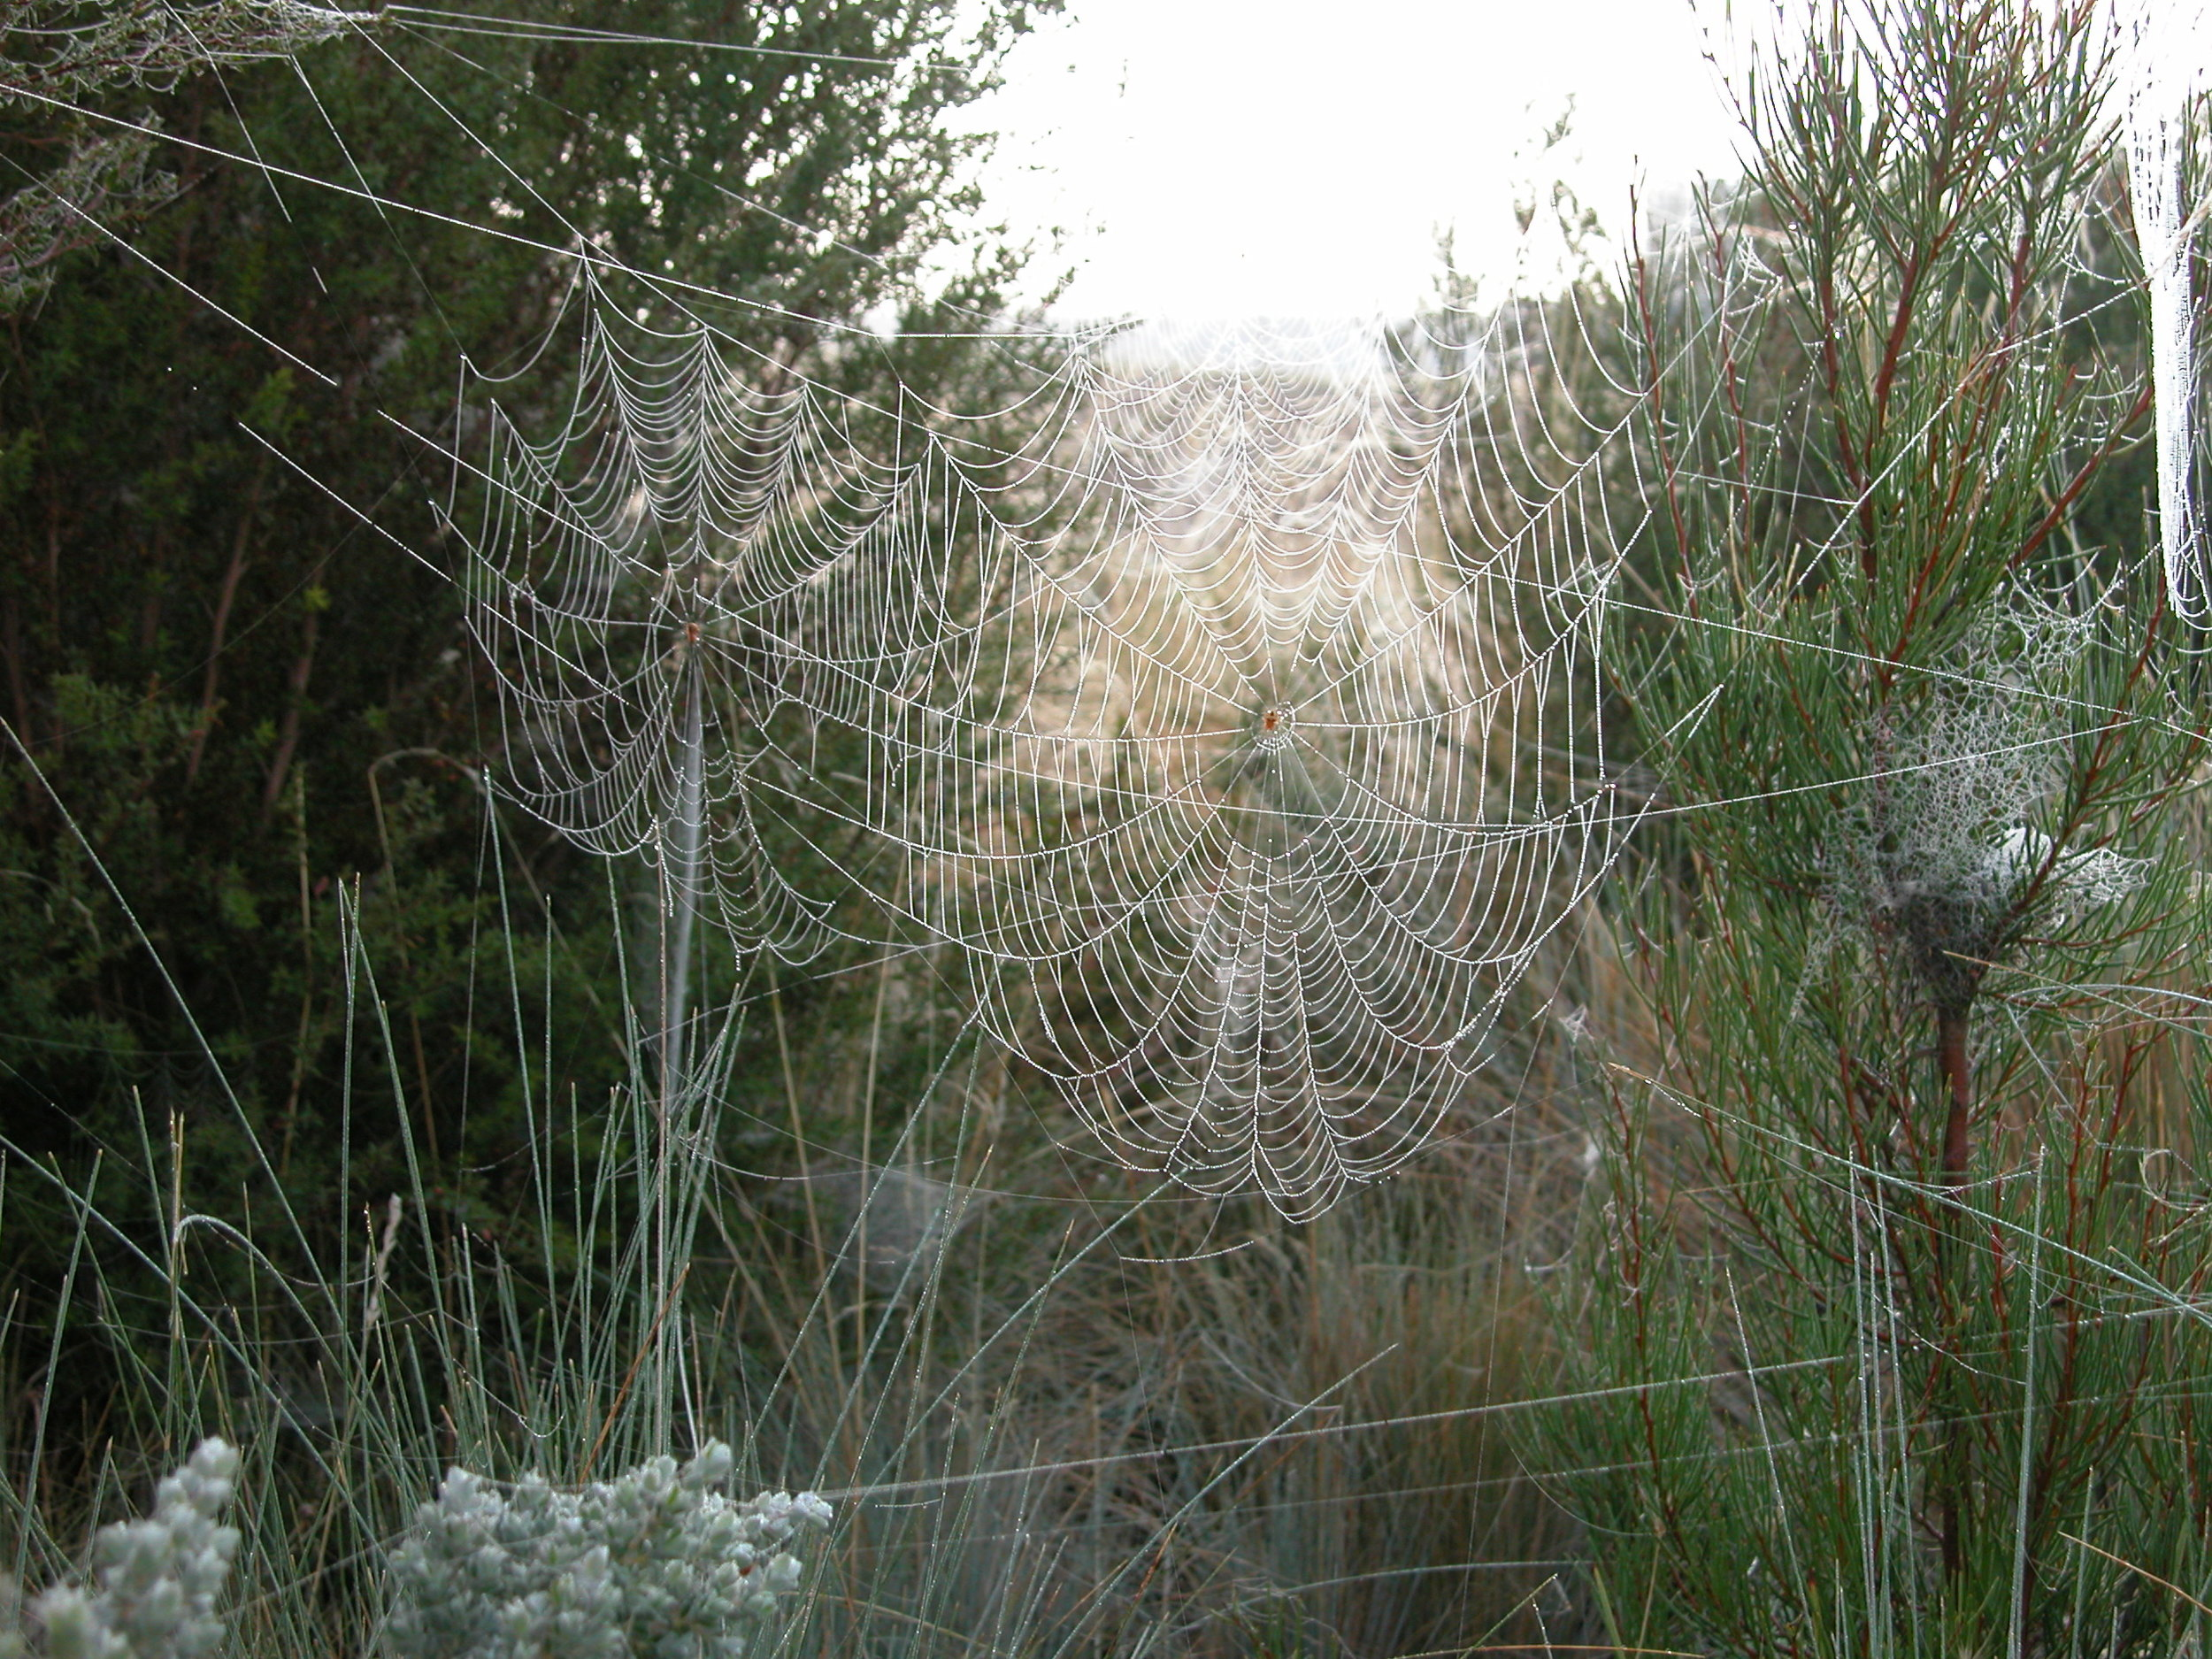 Dewy spider webs in the native garden around my house. This photo was taken in February 2013.